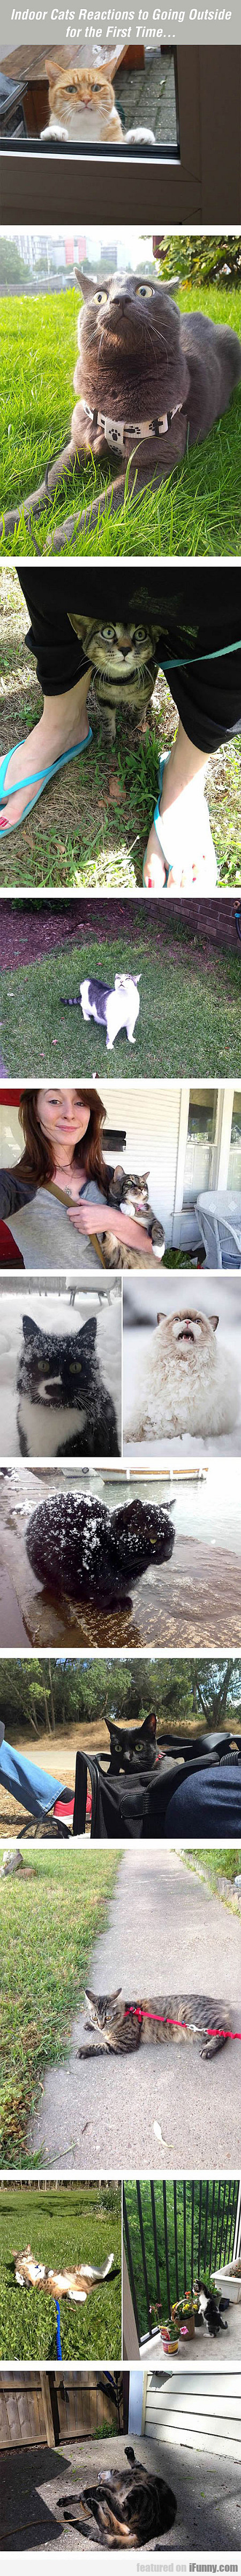 indoor cats reactions to going outside...